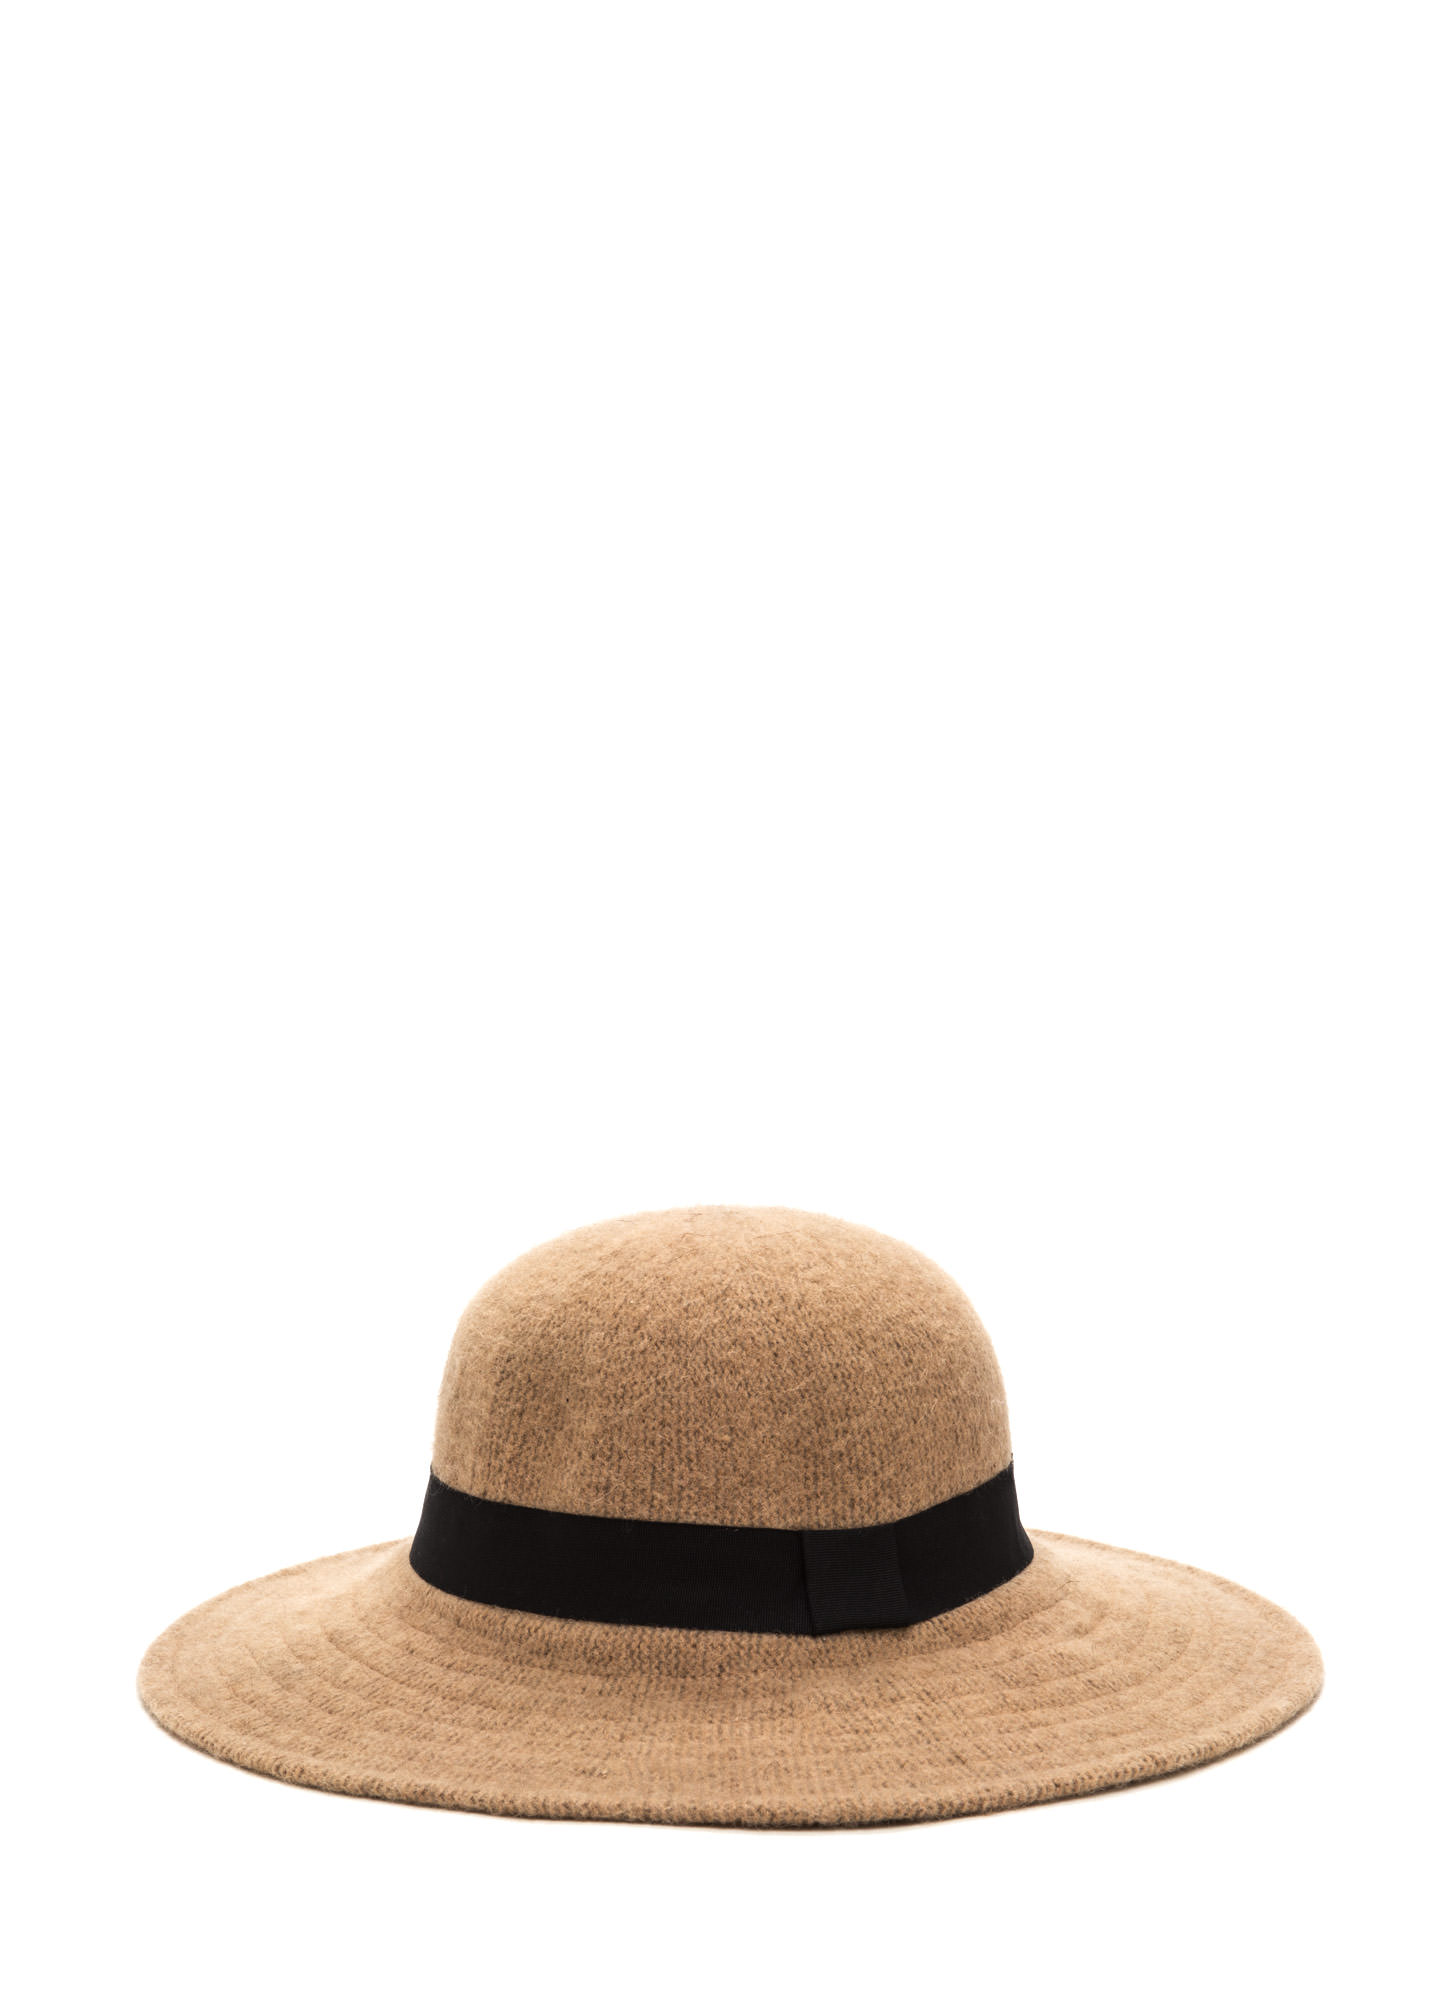 Park Slope Trip Wide Brim Wool Hat BEIGE